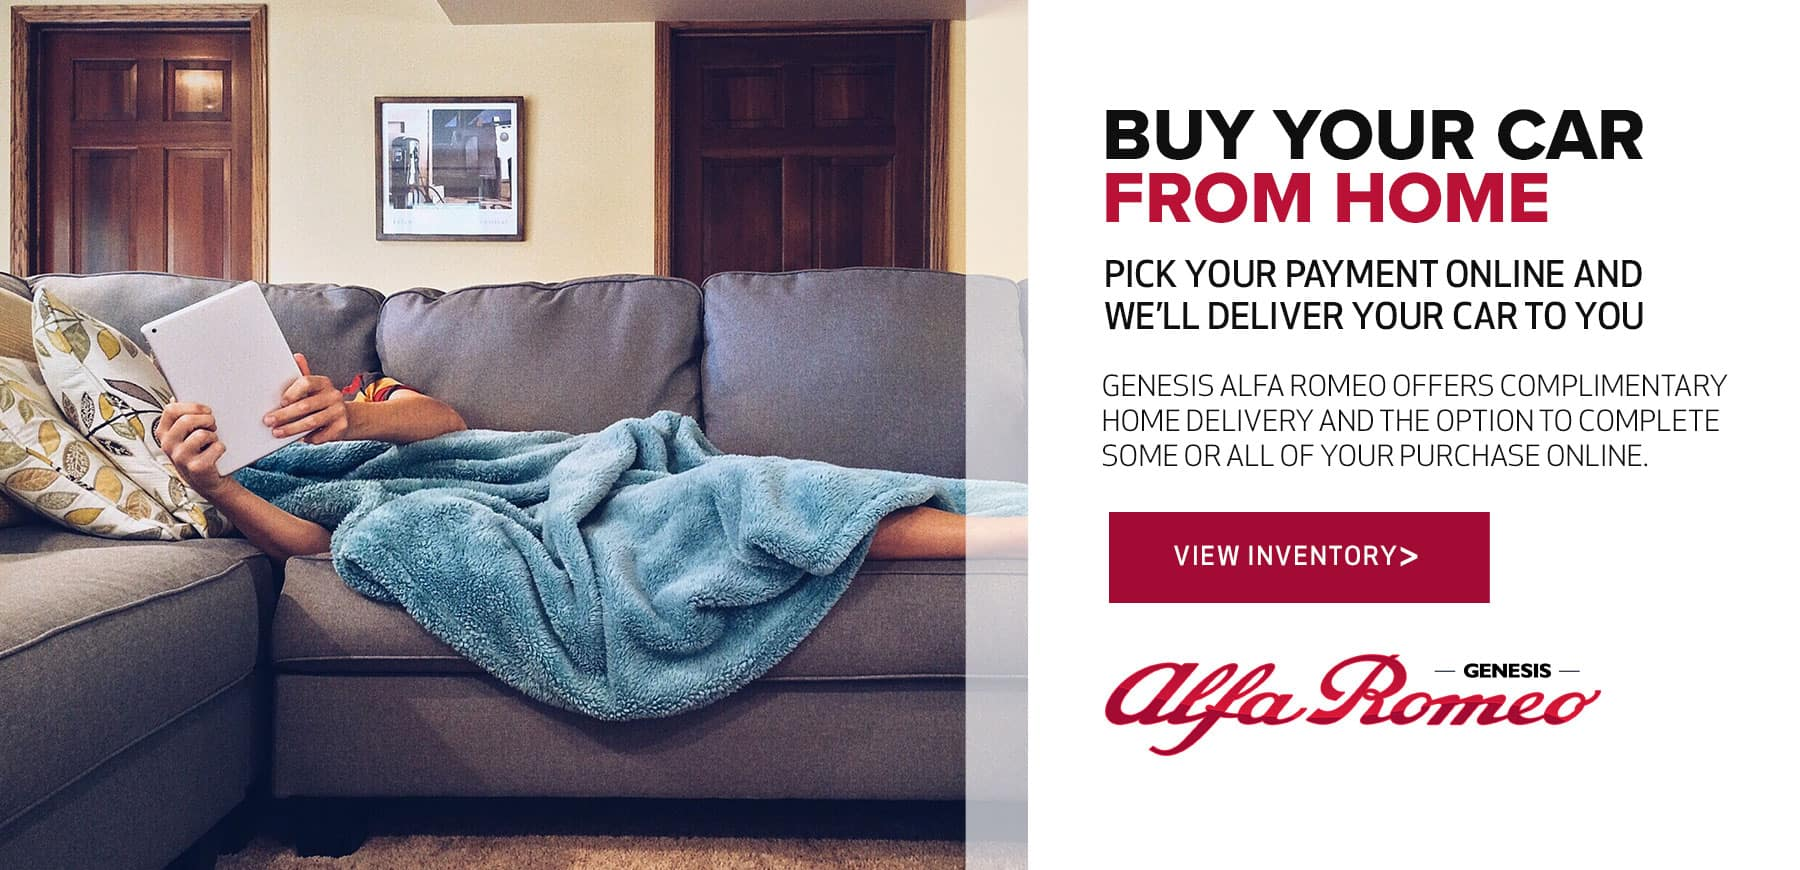 Shop from home with Genesis Alfa Romeo